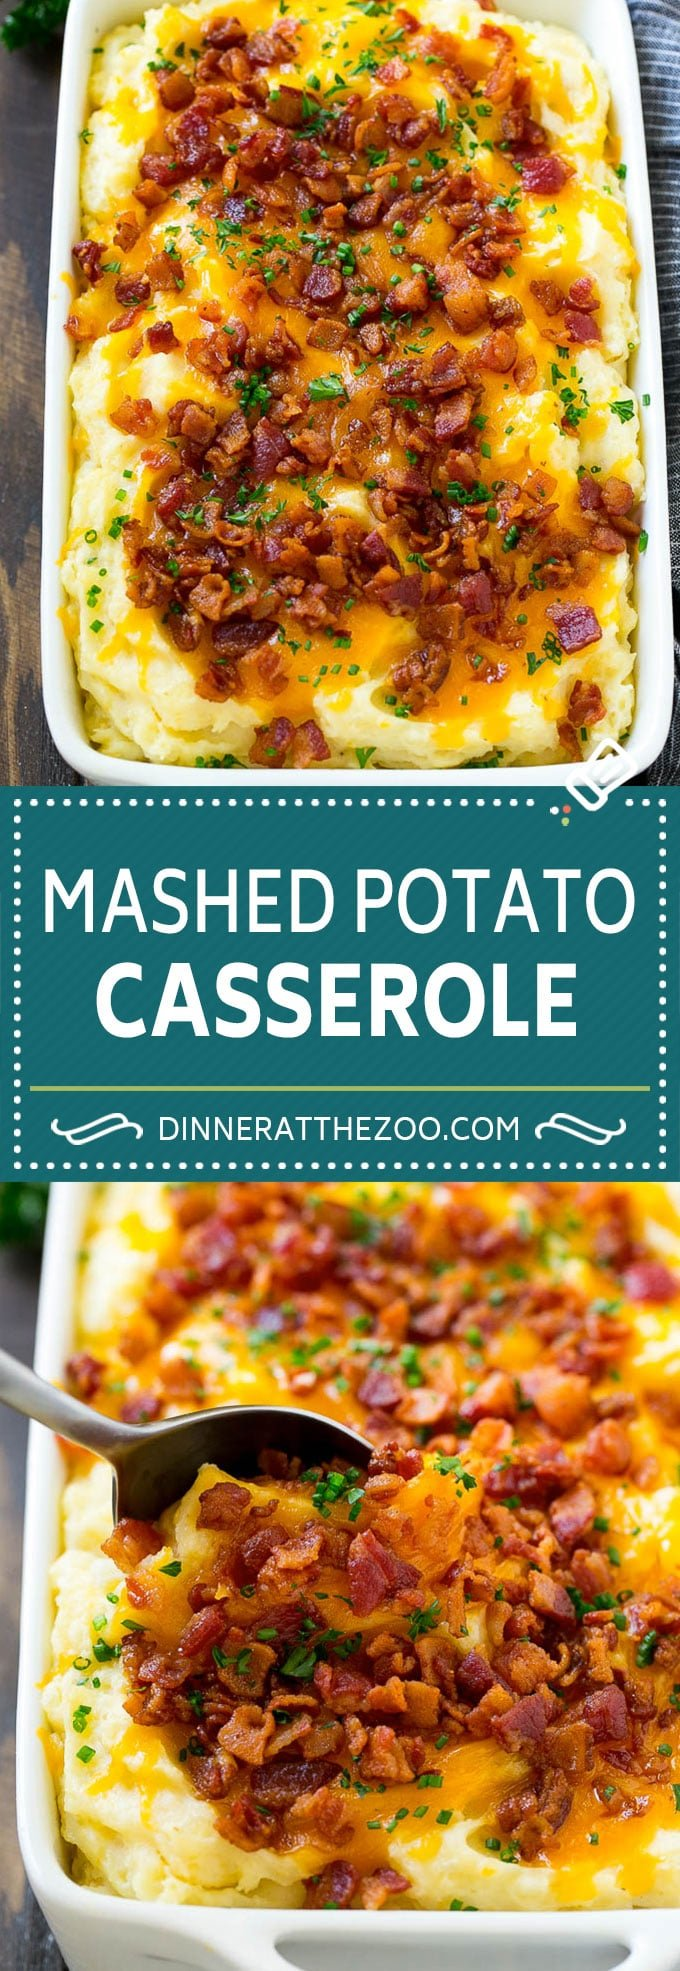 Loaded Mashed Potato Casserole Recipe | Loaded Potatoes | Bacon Mashed Potatoes | Thanksgiving Mashed Potatoes #potatoes #bacon #cheese #casserole #Thanksgiving #dinner #dinneratthezoo